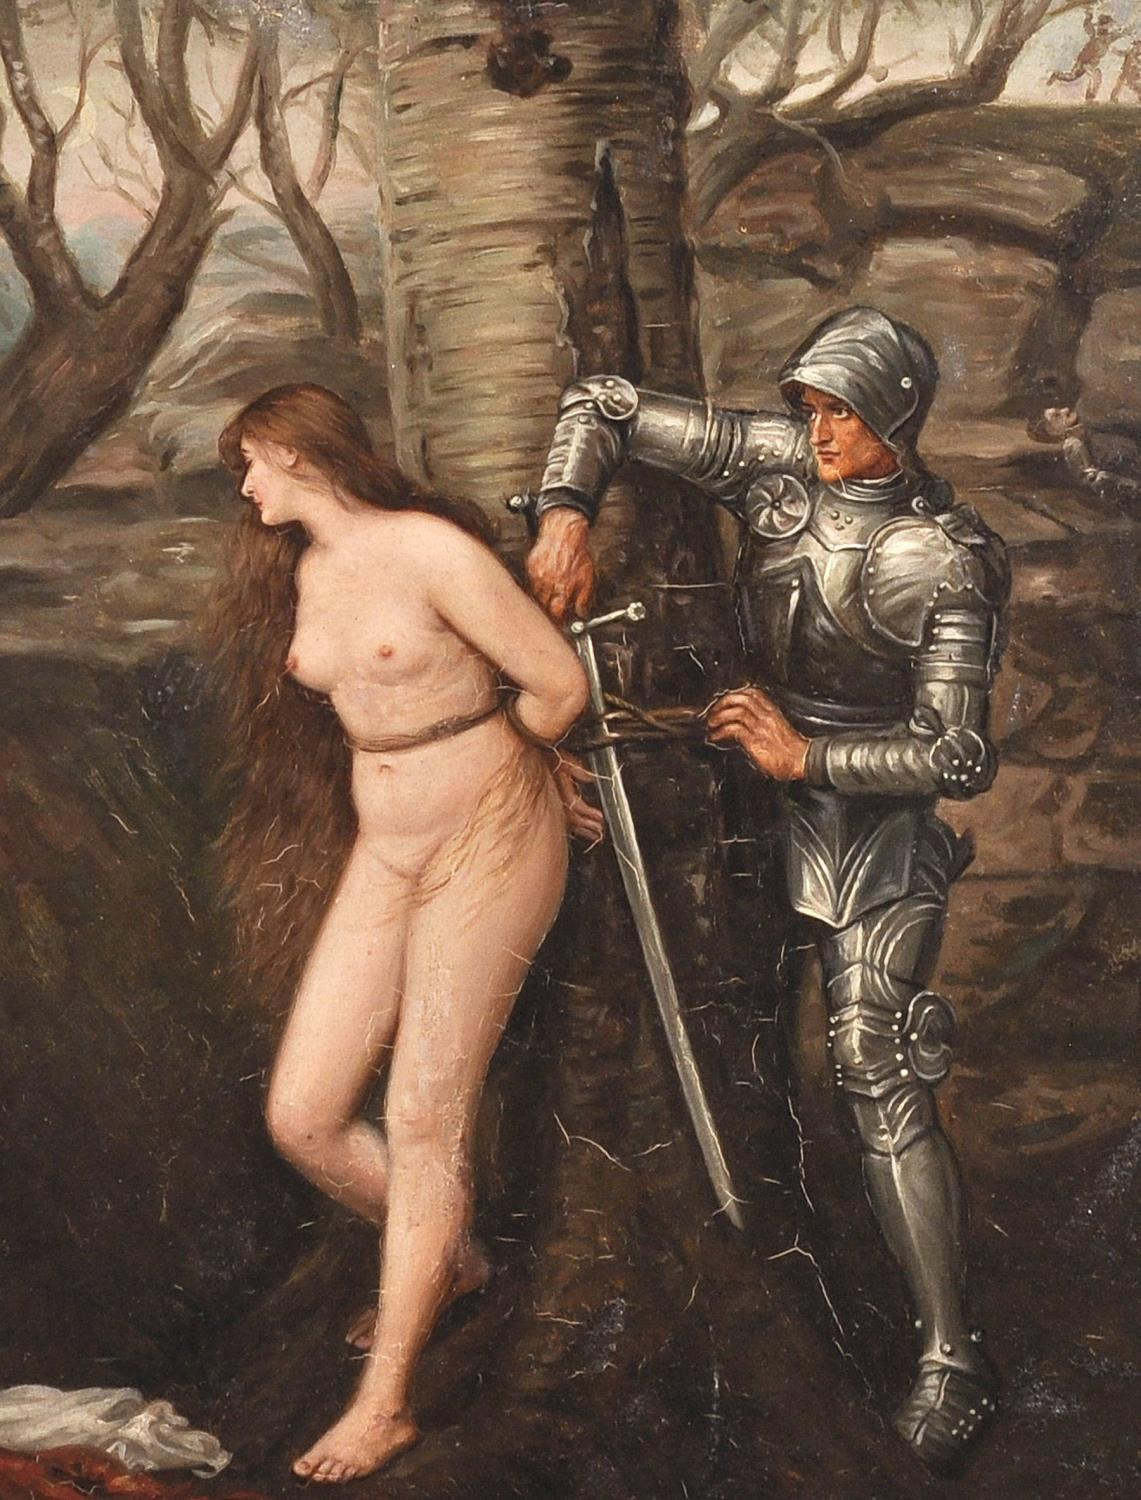 Antique English Oil Painting 'The Knight Errant' Pre-Raphaelite Nude & Knight